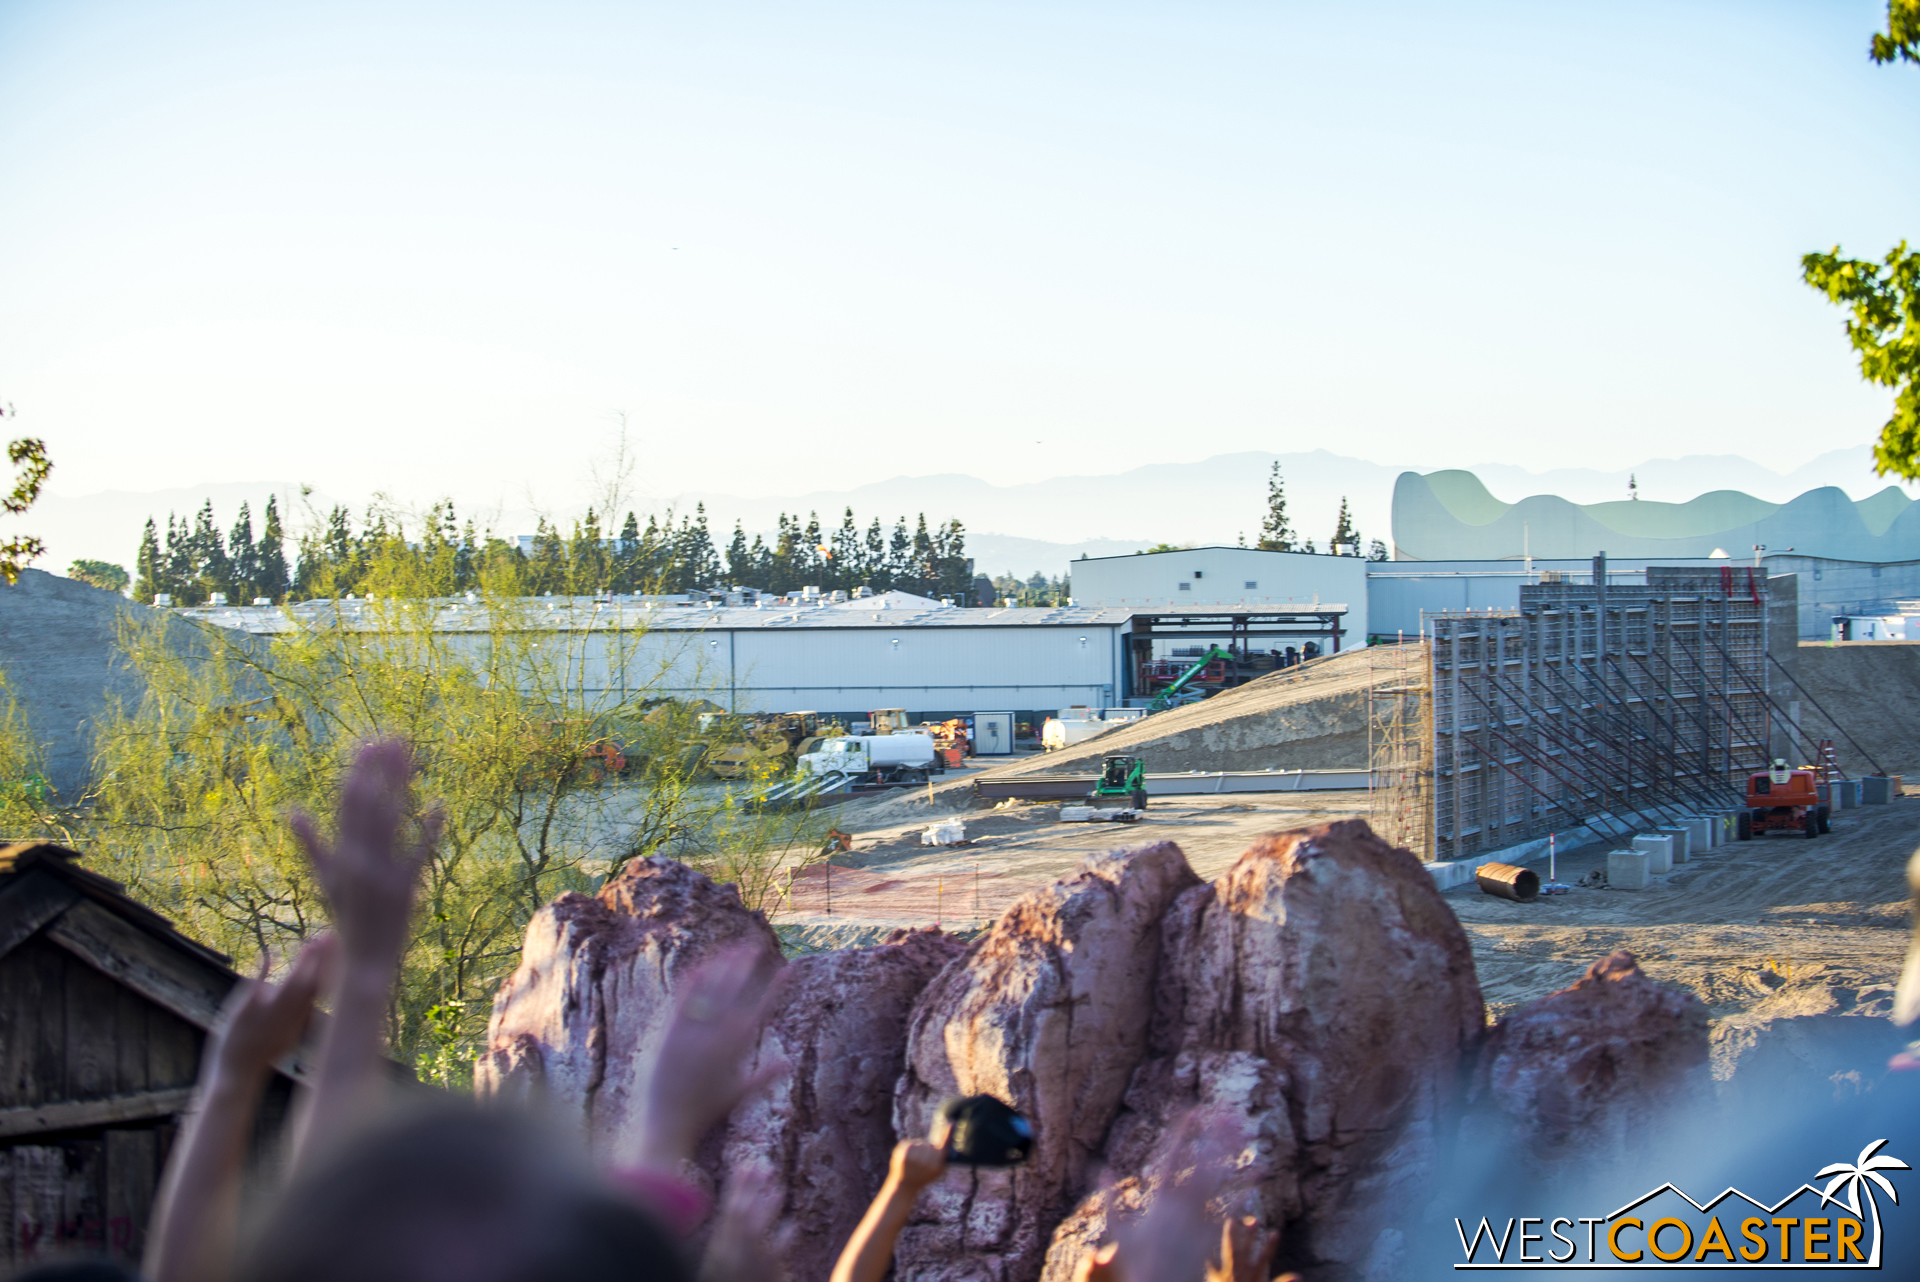 Here's a view of the same area from the second lift hill of Big Thunder Mountain Railroad.